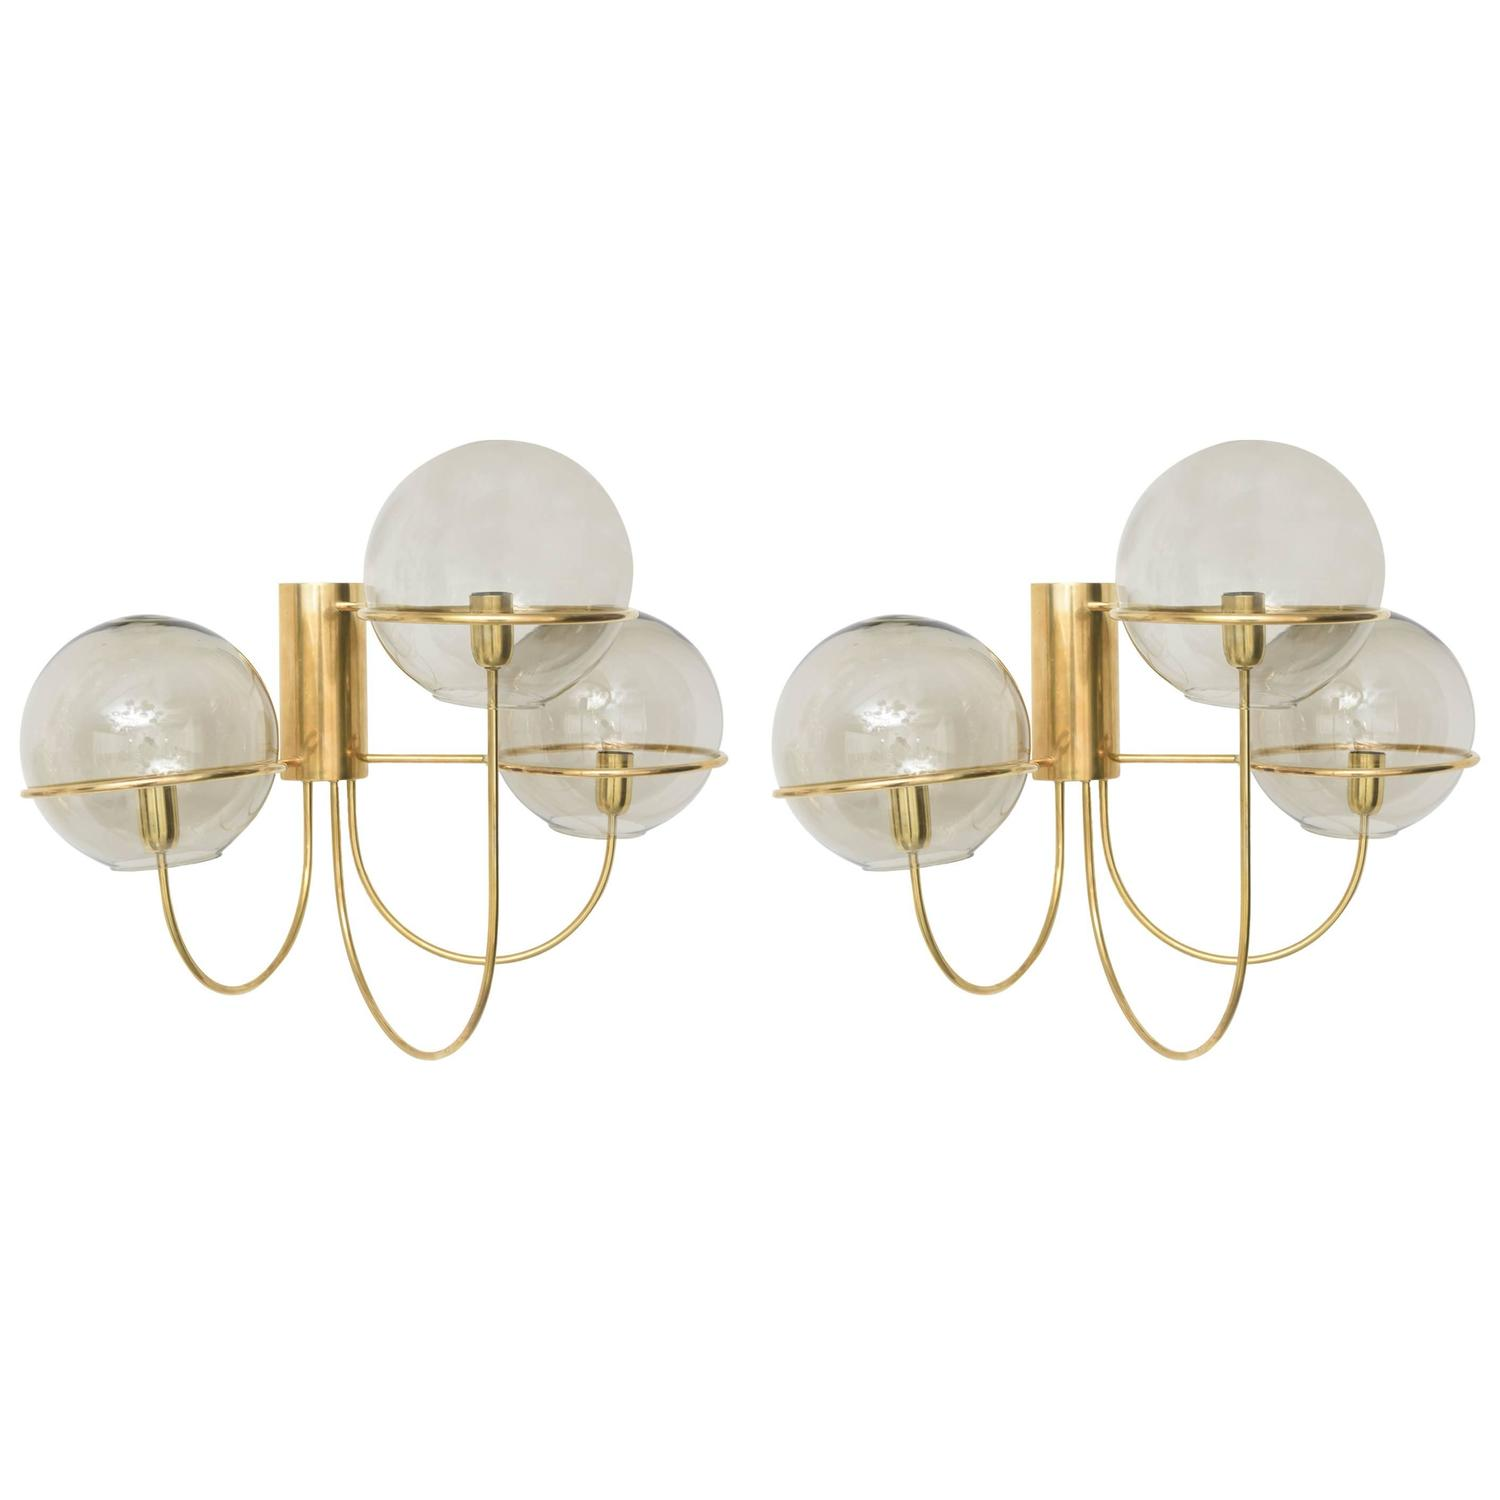 Images Of Wall Sconces Pair Of Mid Century Modern Wall Sconces Star Leuchten